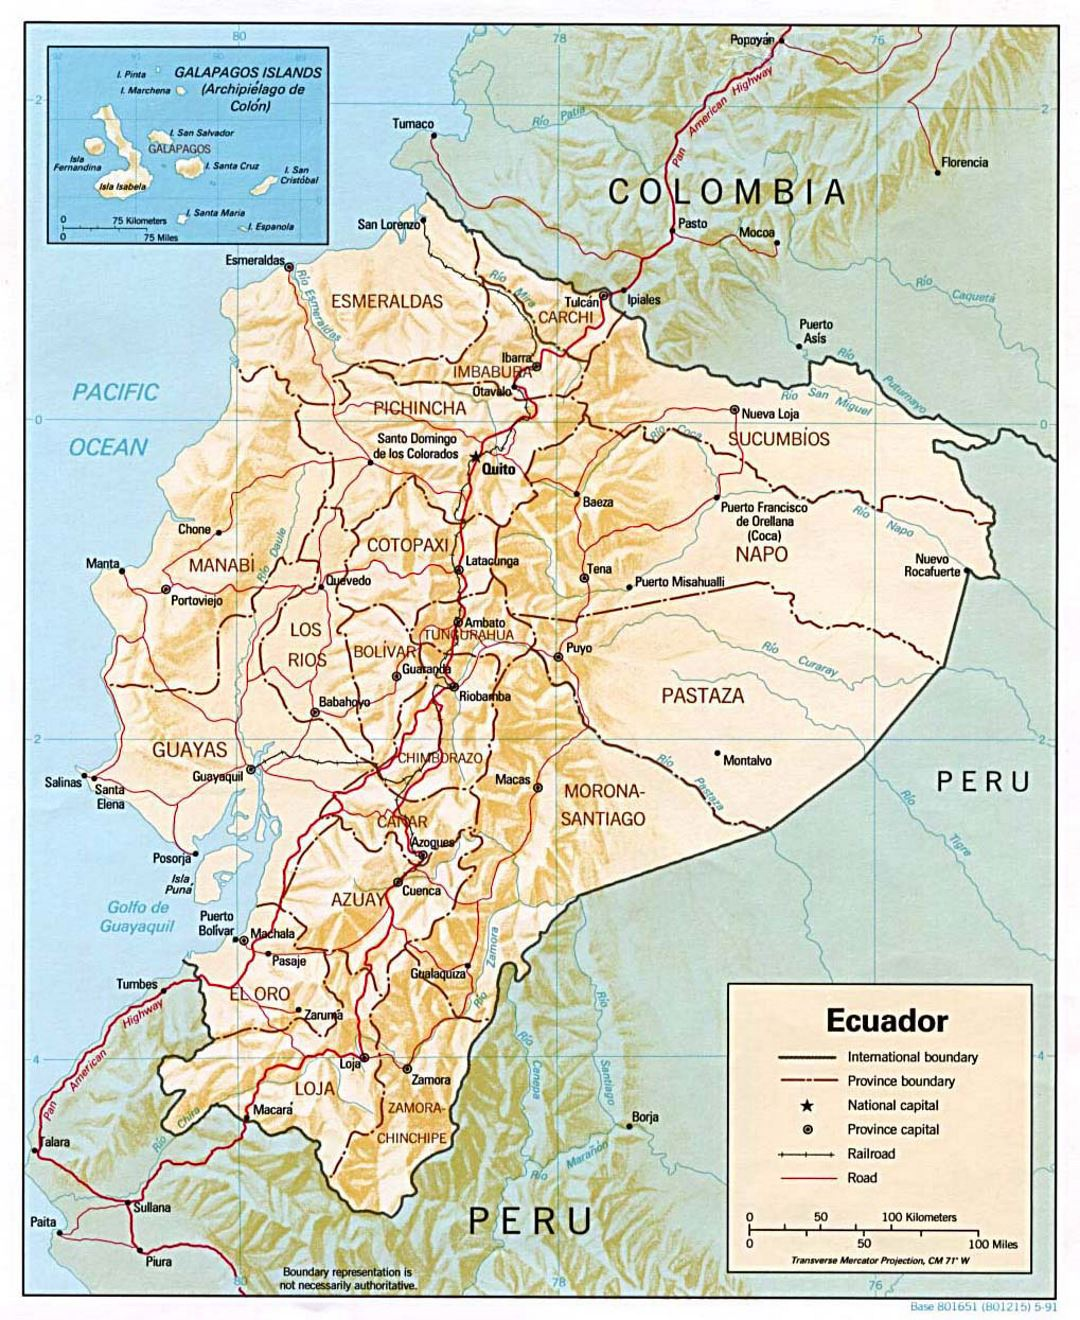 Detailed political and administrative map of Ecuador with relief, major roads and major cities - 1991